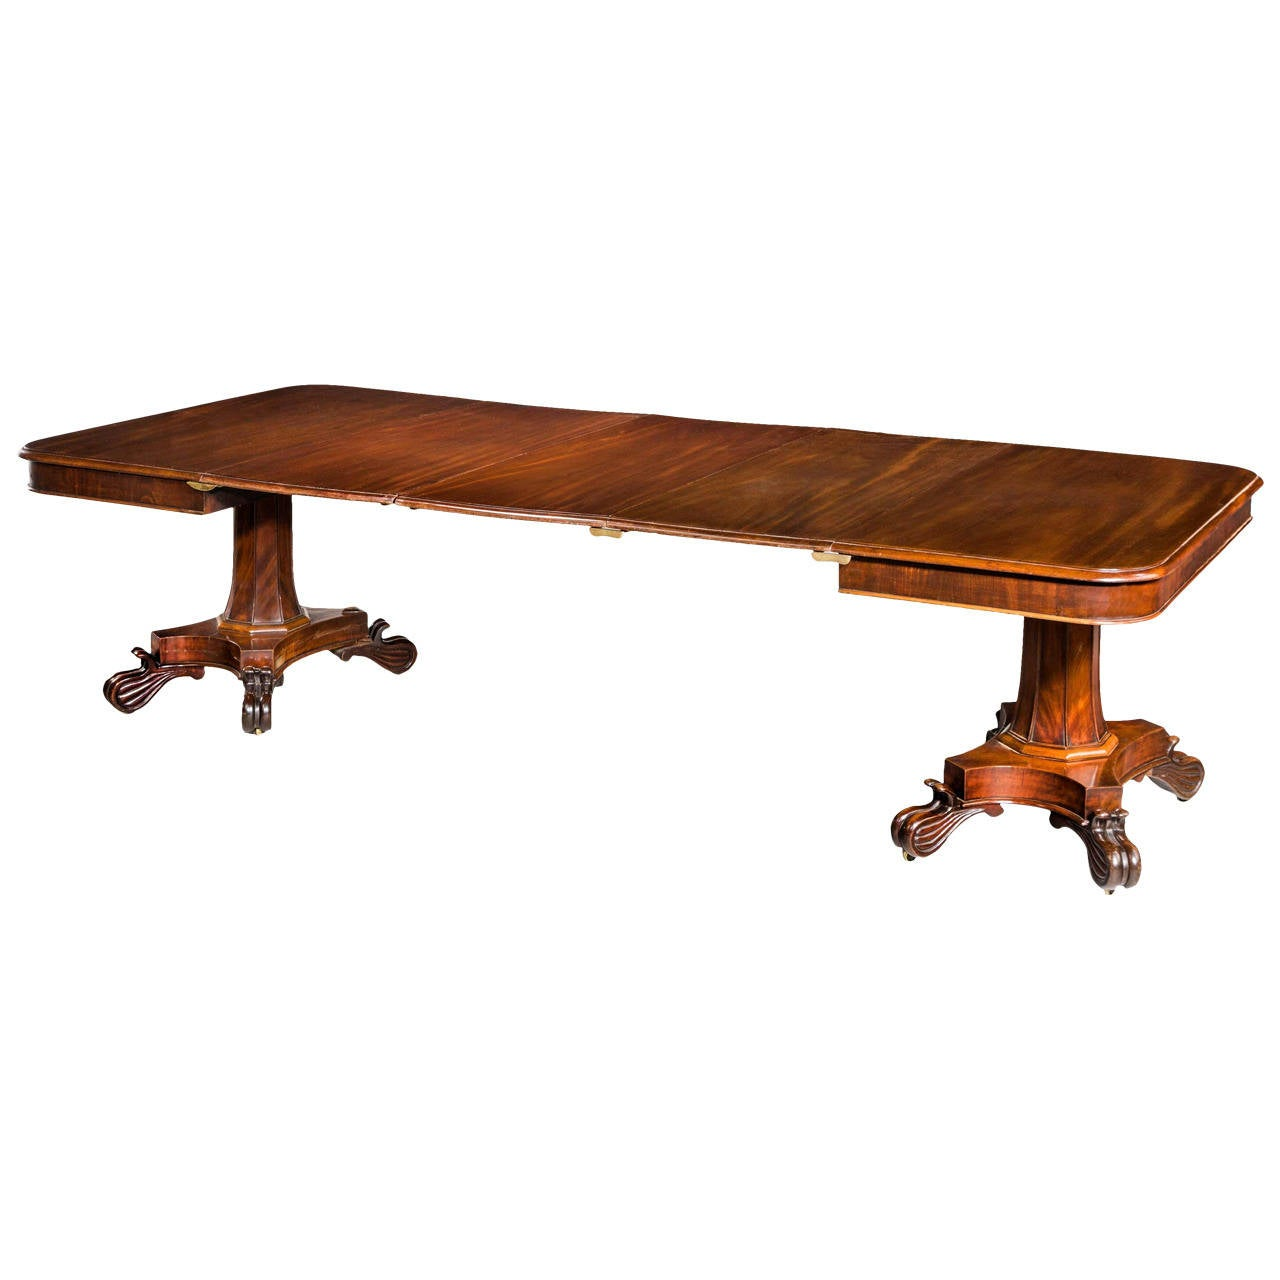 Regency period two pillar dining table at 1stdibs for Pillar dining table